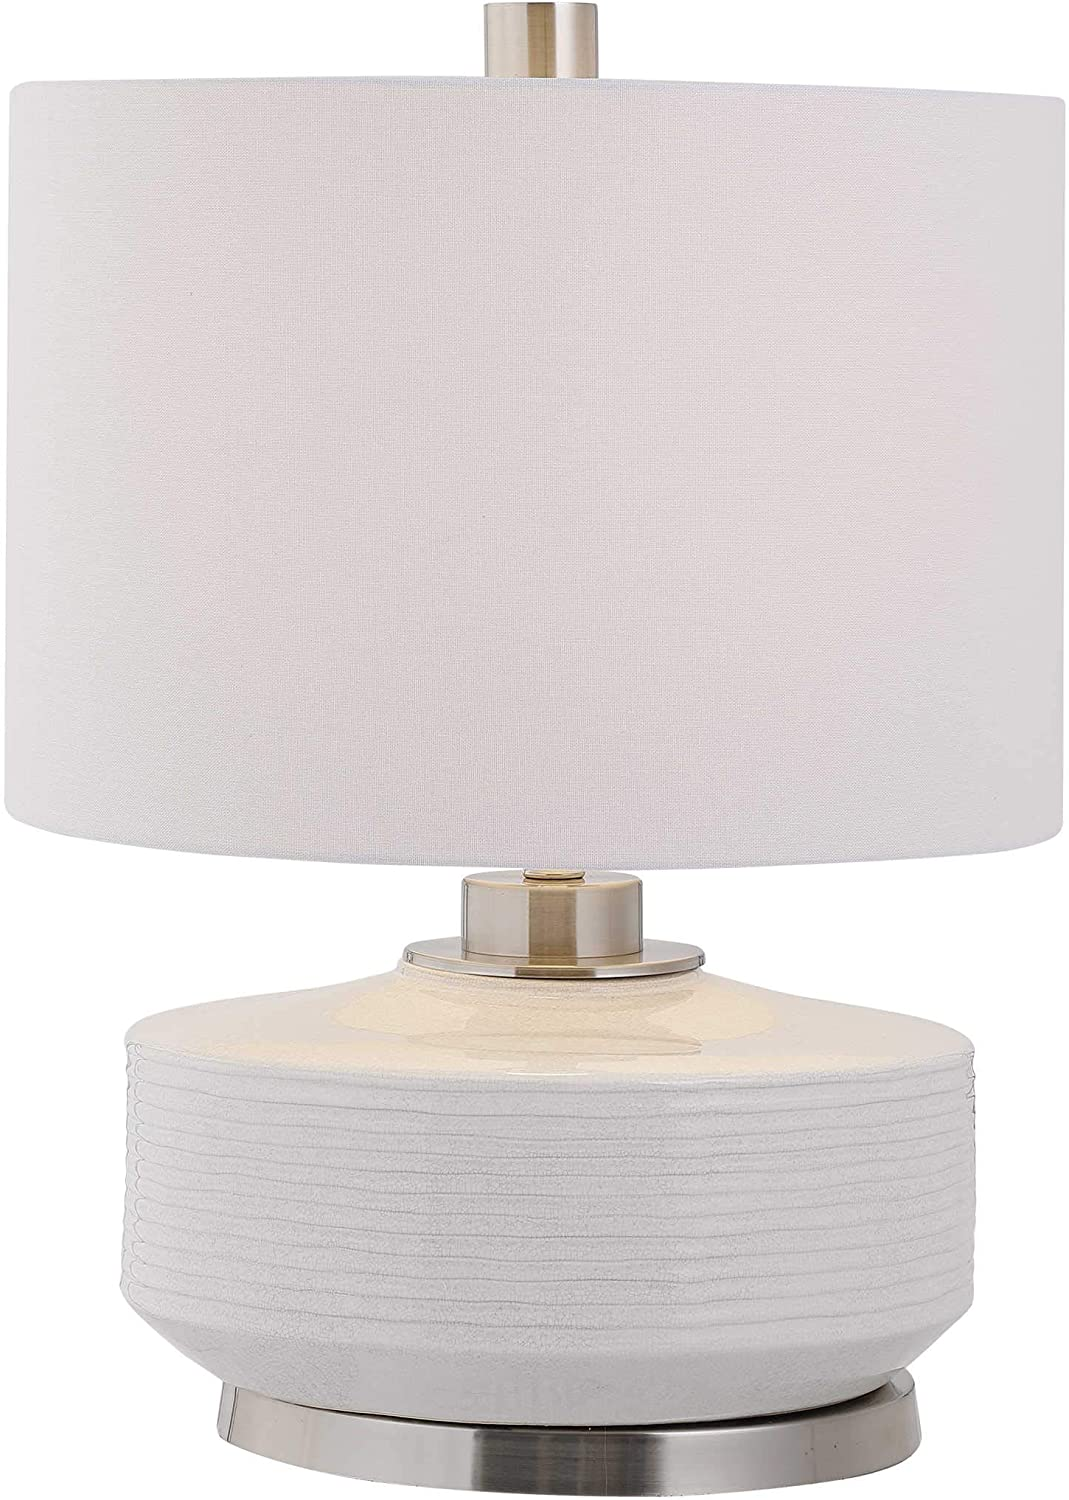 MY SWANKY HOME Luxe Fat Contemporary Striped Ceramic Table Lamp Gray Ivory Silver White Round